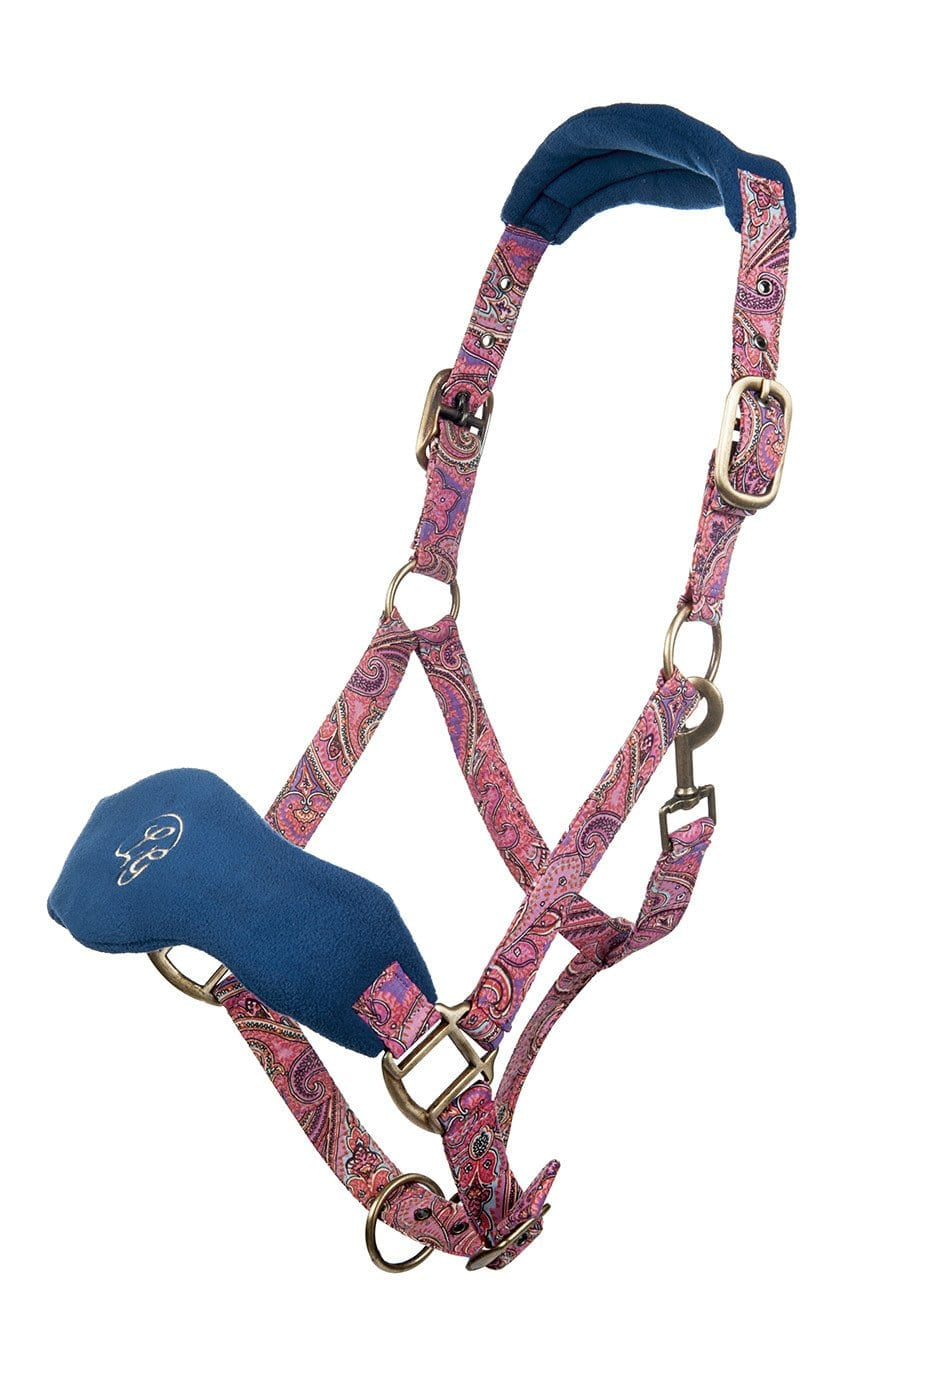 HKM Lauria Garrelli Queens Paisley Head Collar in Navy and Paisley 9039